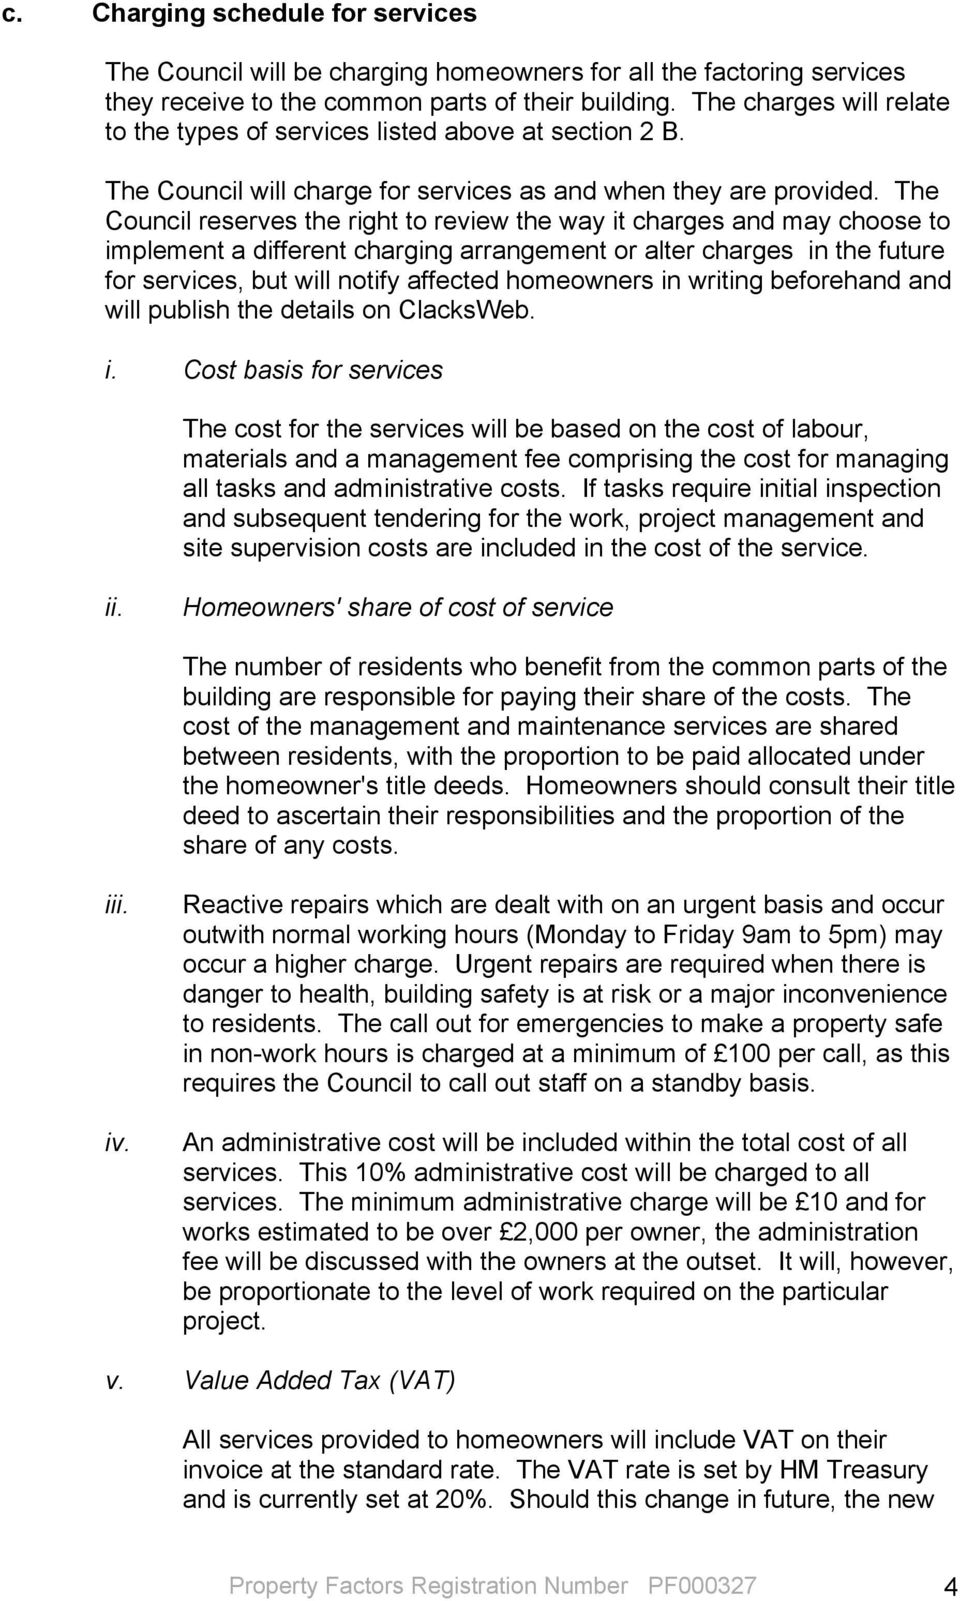 The Council reserves the right to review the way it charges and may choose to implement a different charging arrangement or alter charges in the future for services, but will notify affected